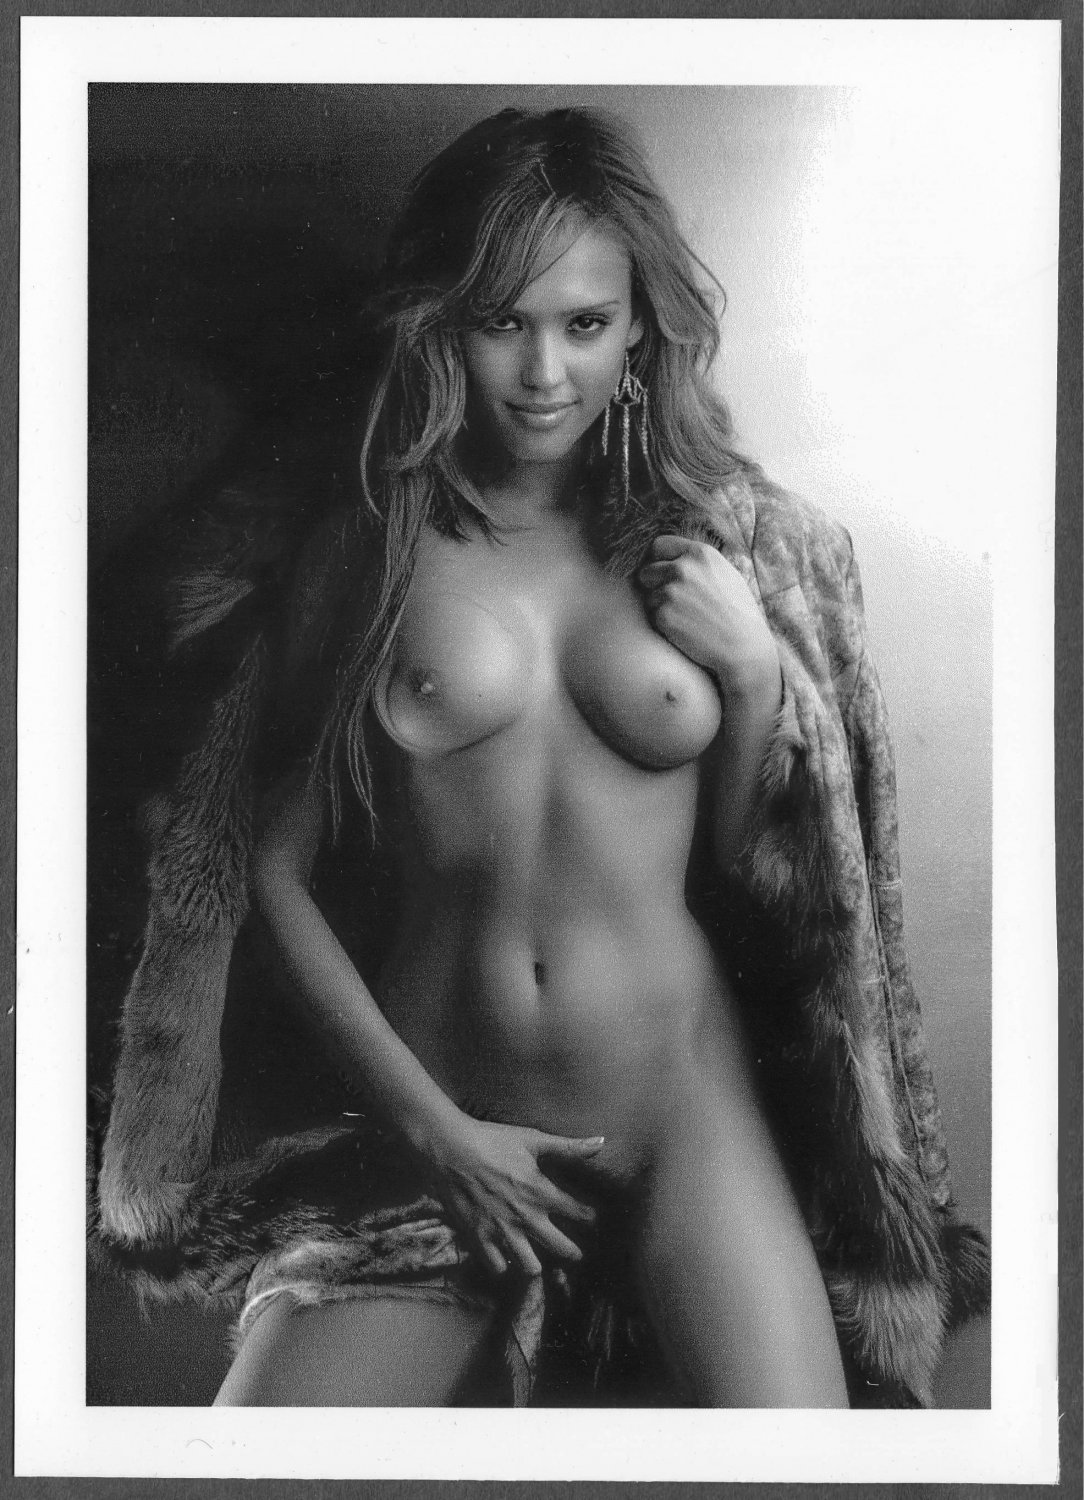 JESSICA ALBA TOTALLY NUDE HUGE HEAVY BOOBS HAIRY PUSSY POSE 5X7 #004